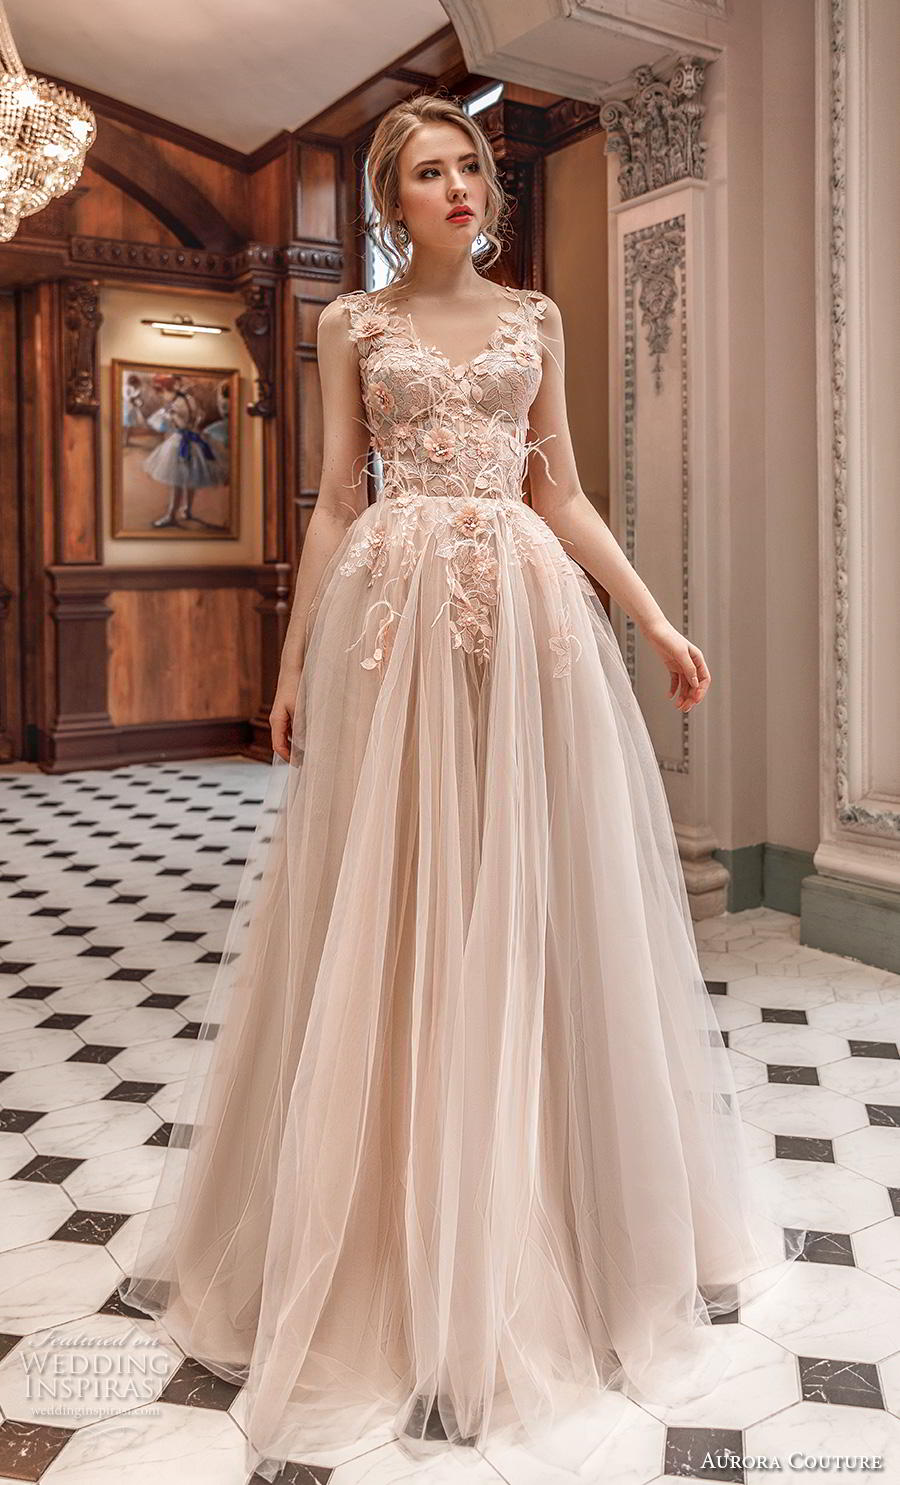 aurora couture 2019 bridal sleeveless with strap v neck heavily embellished bodice bustier tulle skirt romantic blush ball gown a  line wedding dress (13) mv